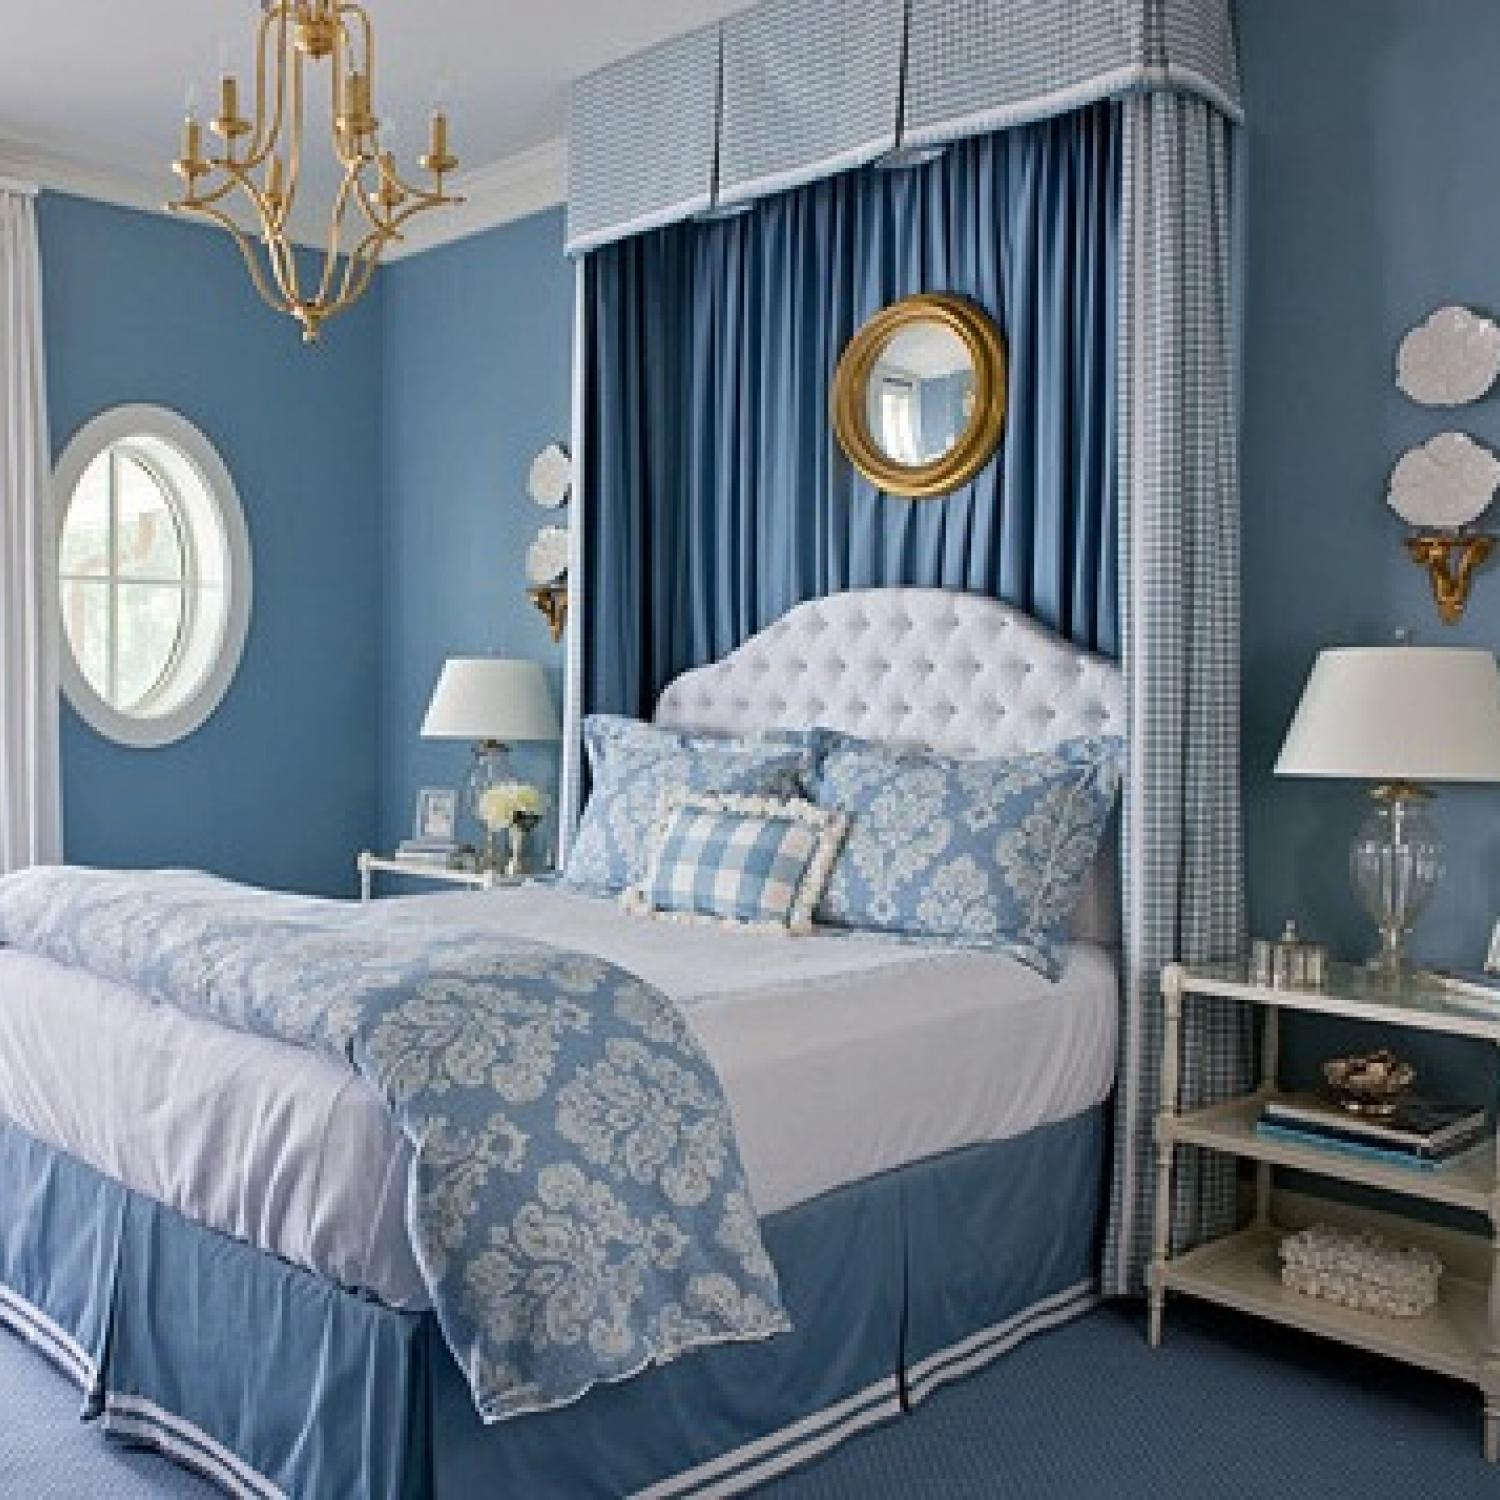 Bedroom Ideas Room: Beautiful Blue Bedrooms